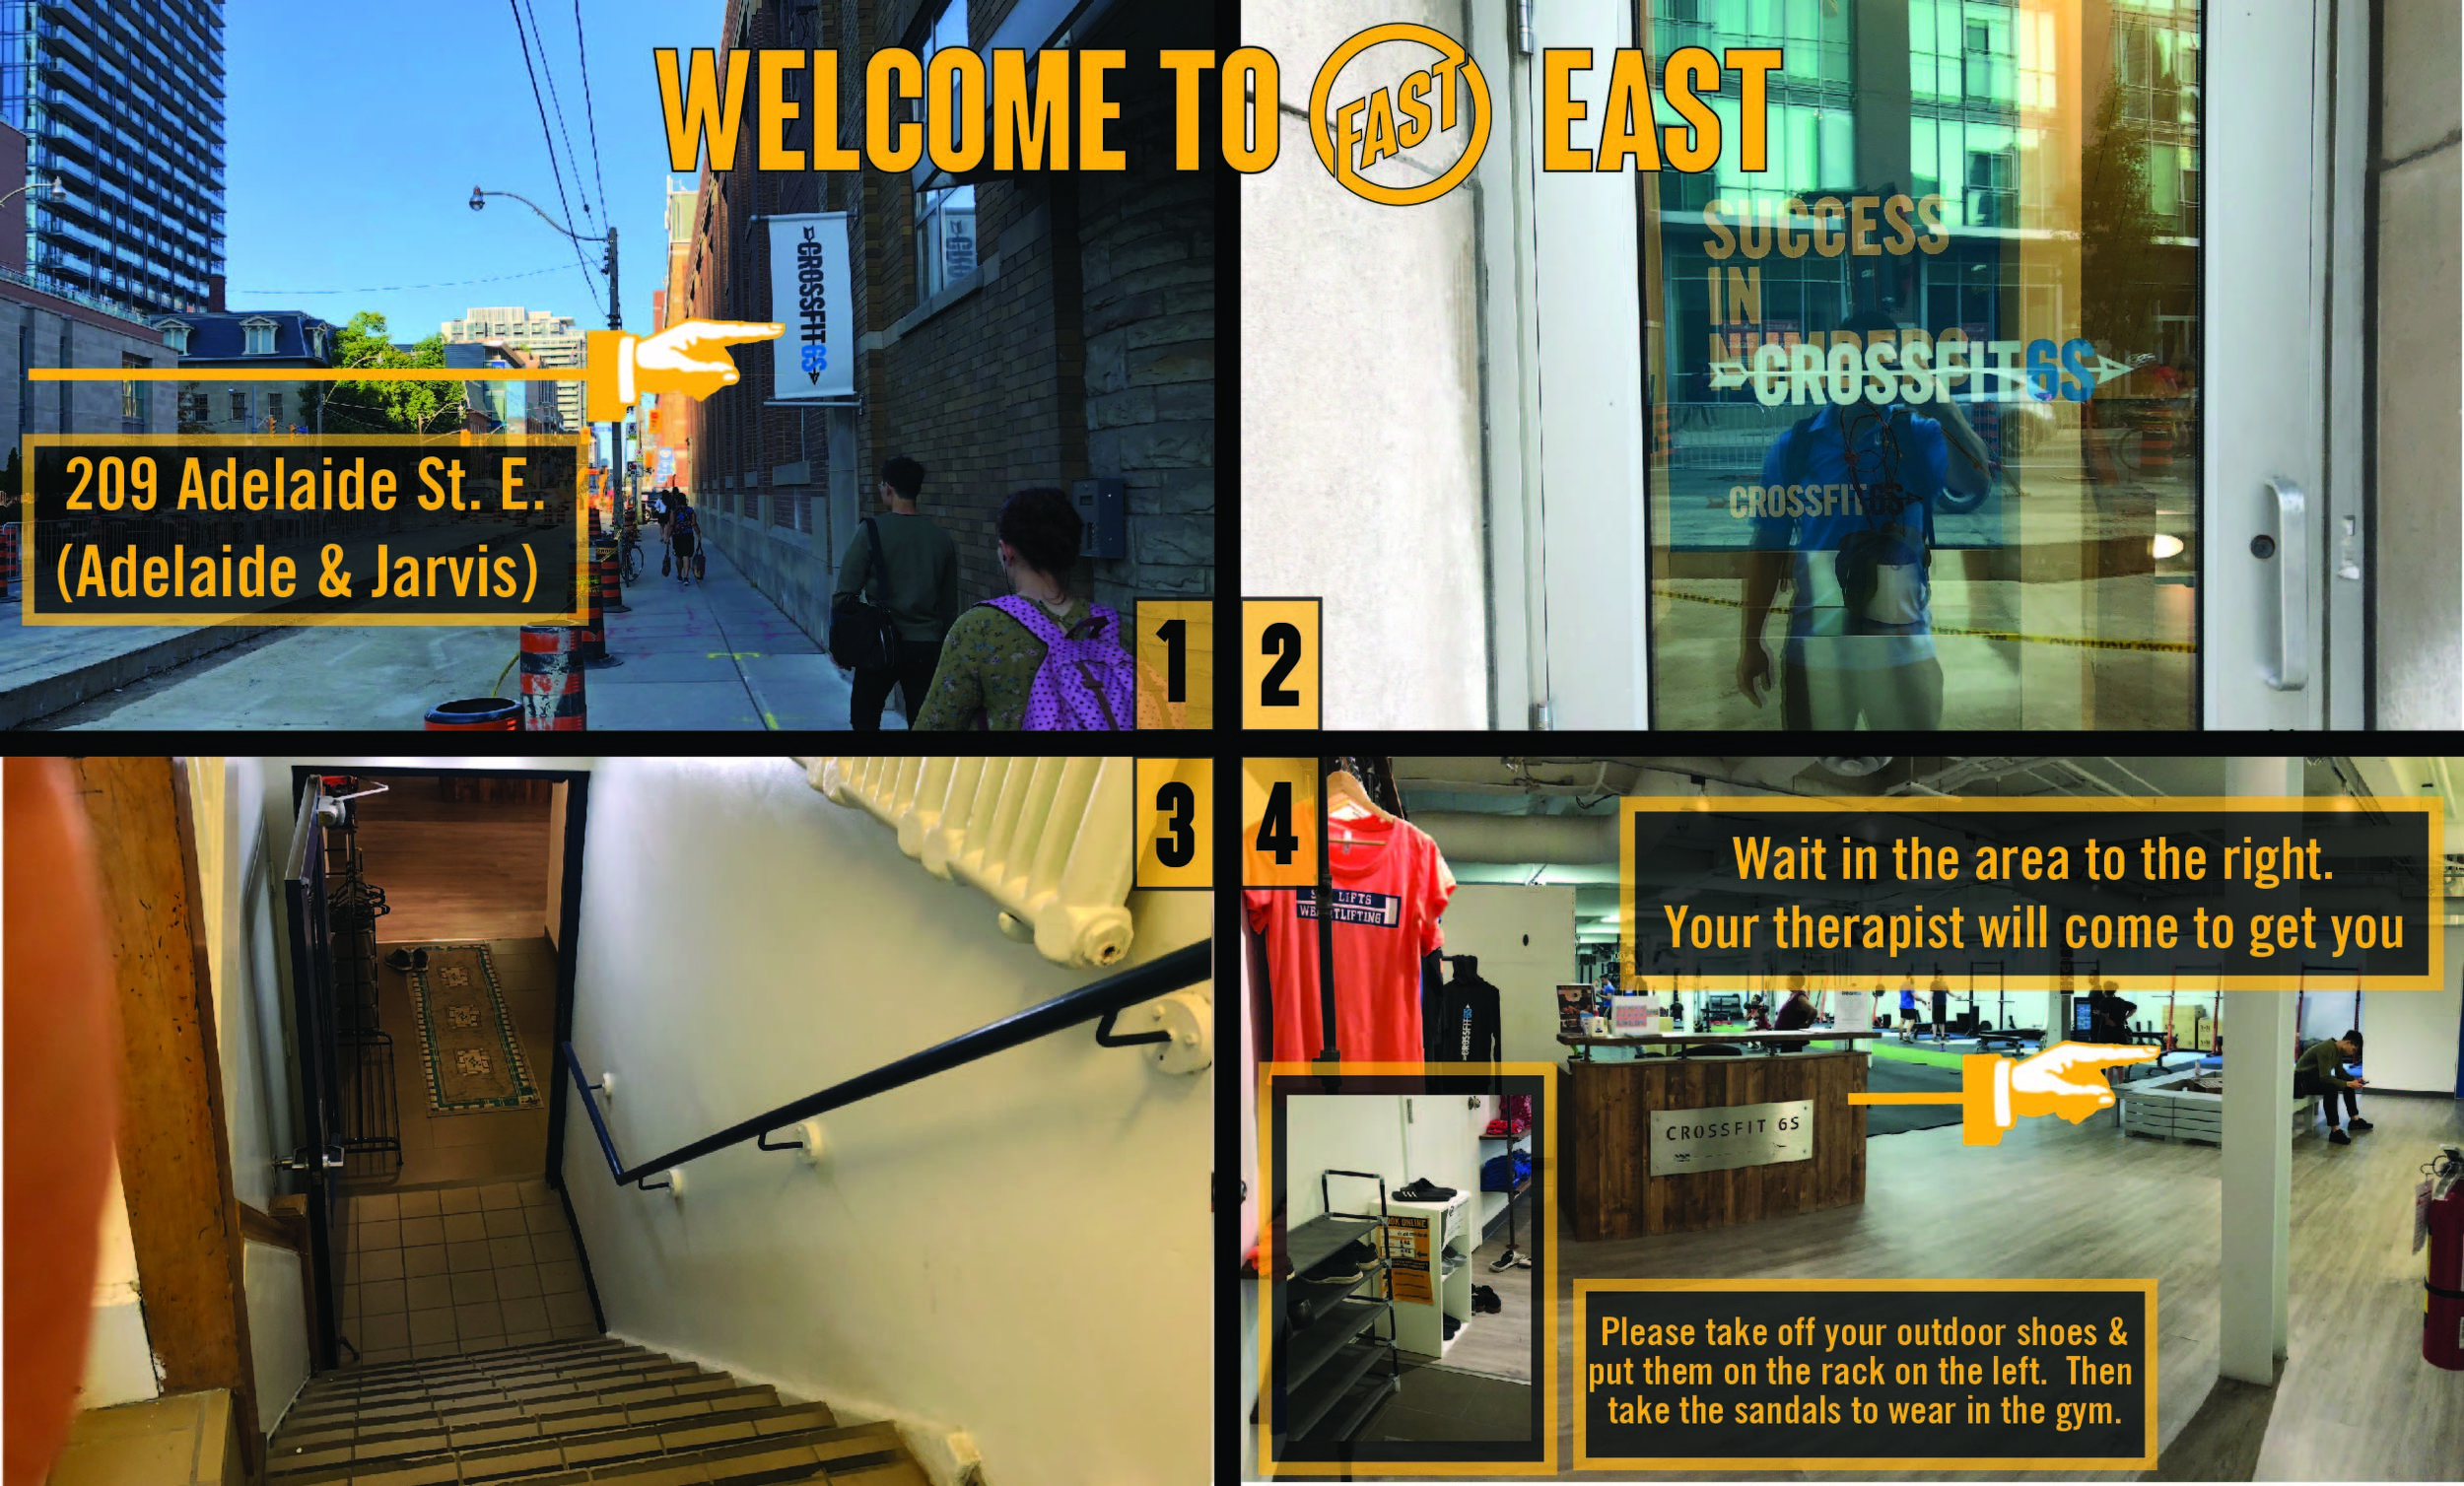 Welcome to OHFAST East Summary-50.jpg